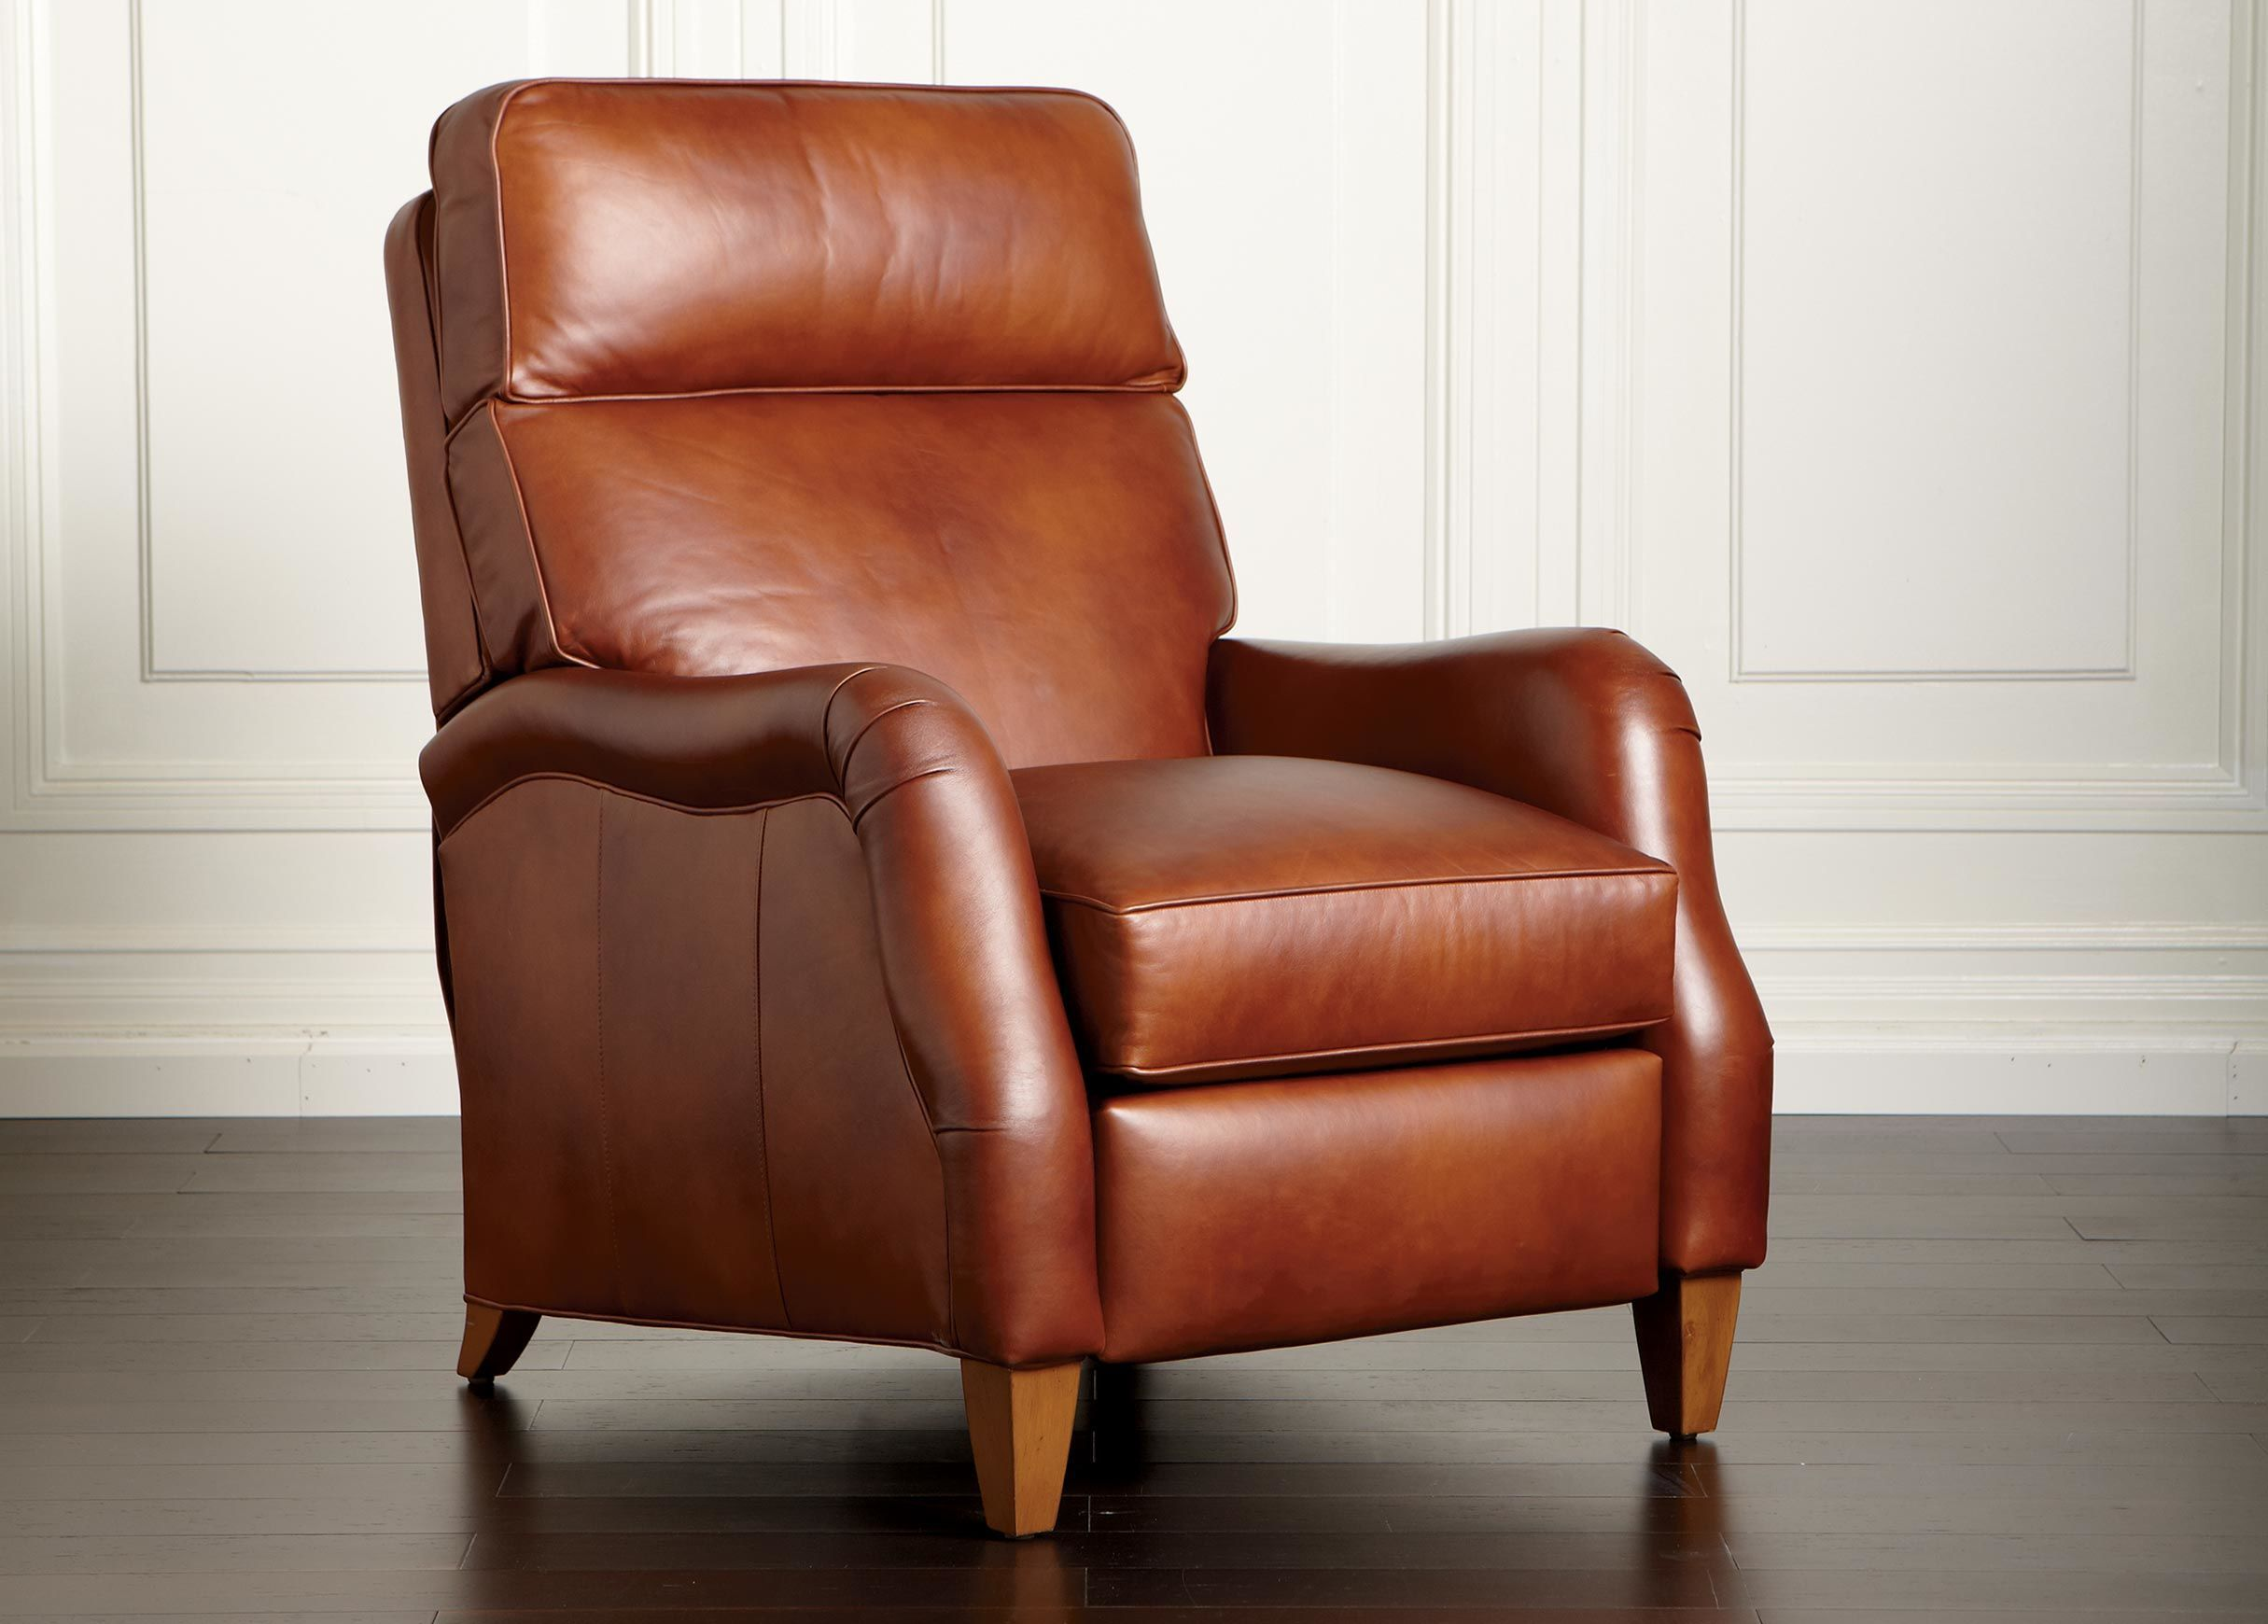 ethan allen recliners chairs chair for gym aiden leather recliner pinterest